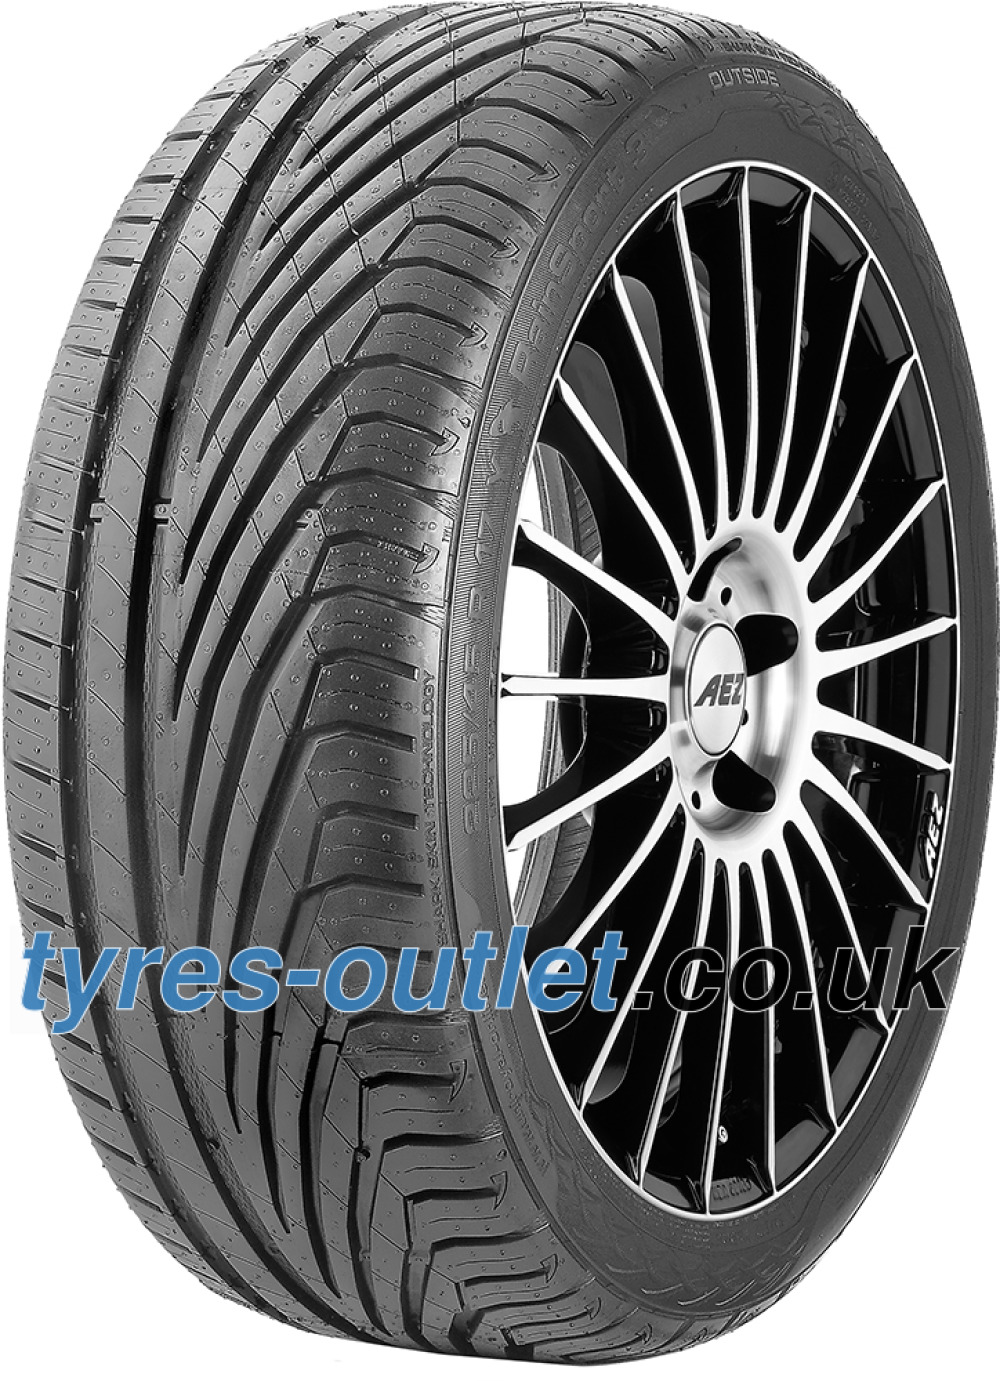 Uniroyal RainSport 3 ( 275/35 R20 102Y XL with kerbing rib )